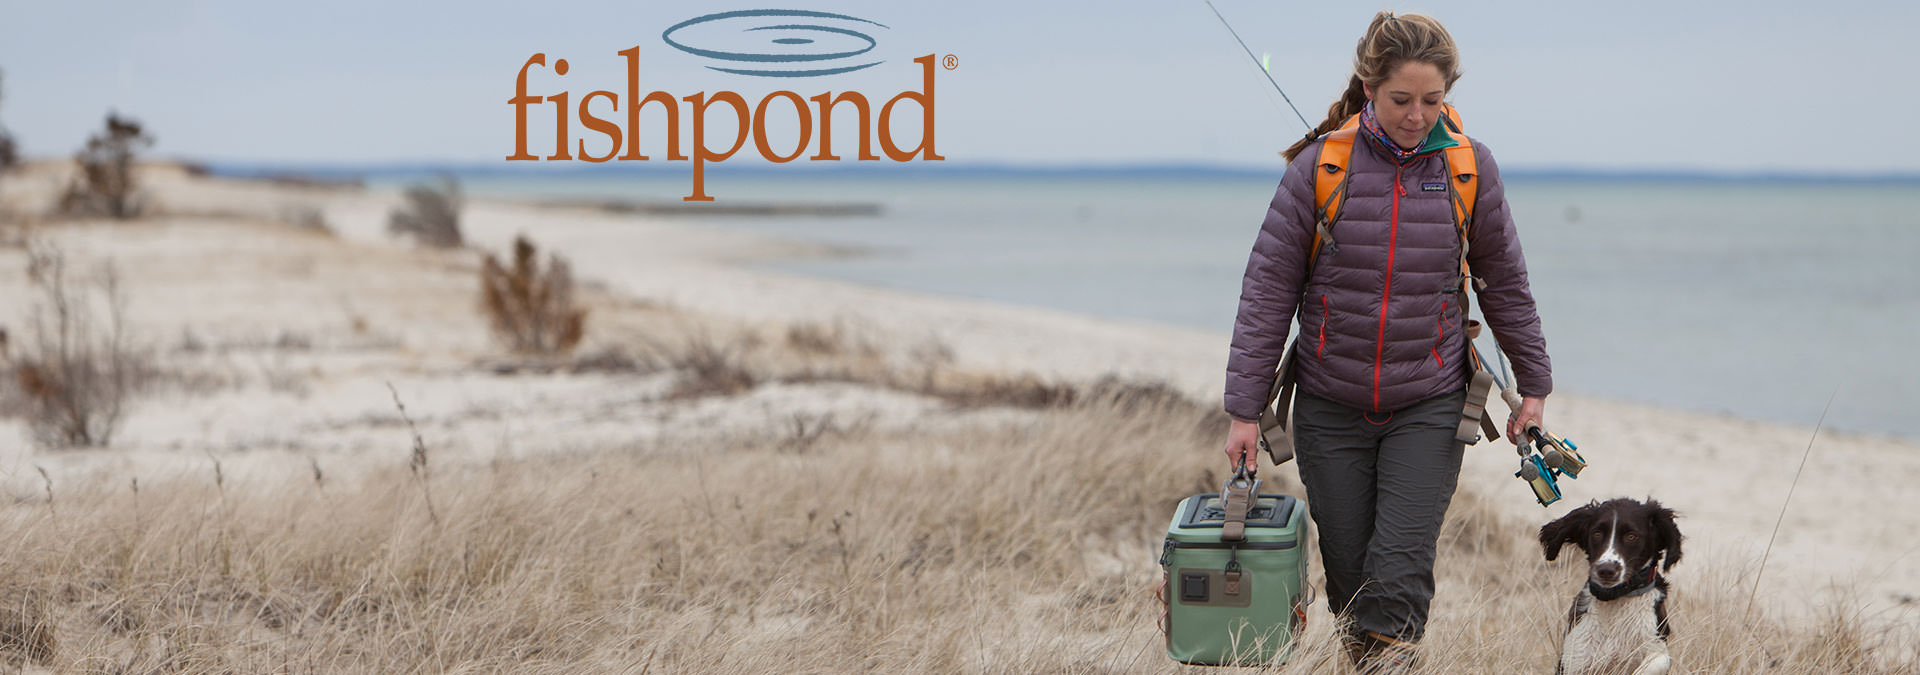 Patagonia Fly Fishing Gear and Apparel and Packs